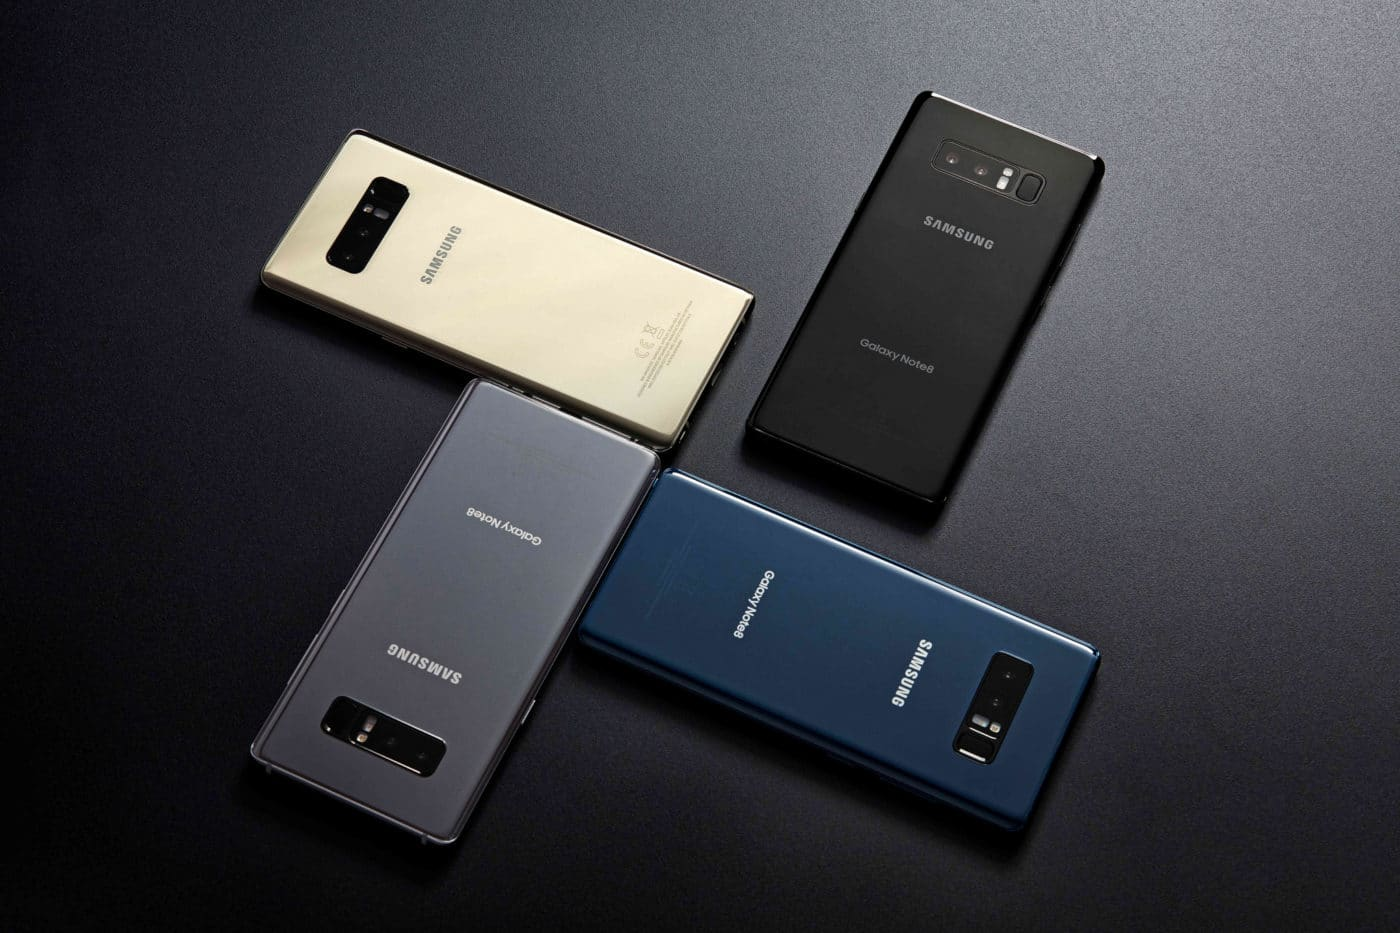 Samsung Galaxy Note 9 To Pack 3 AR-Ready OIS Enabled Cameras, Schematics Suggest 1